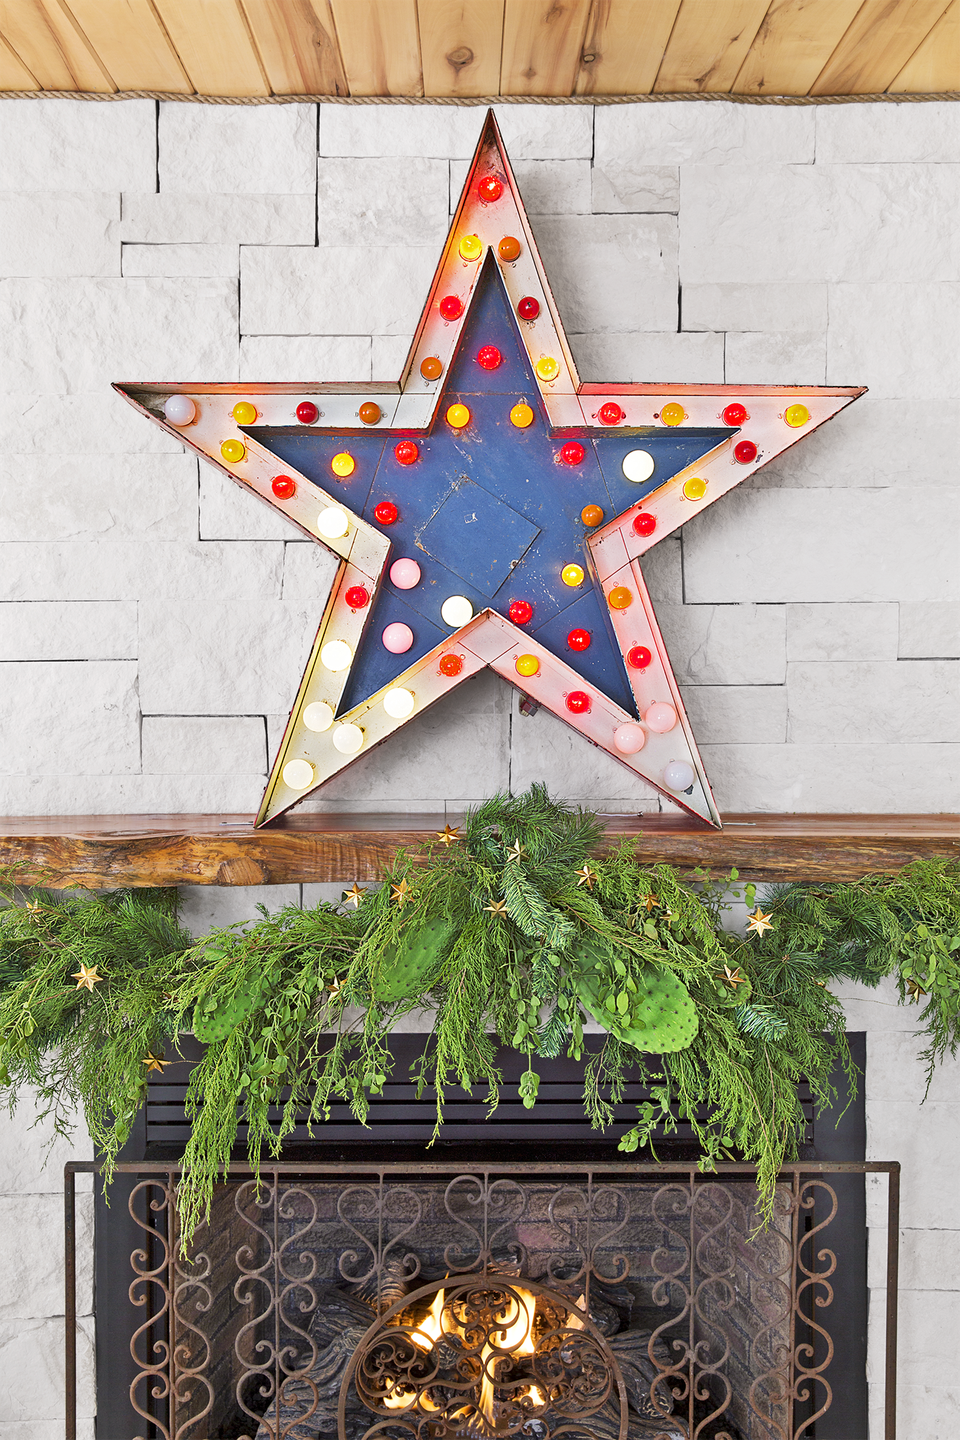 """<p>When paired with fresh garland, a vintage star light makes a statement on the mantel of the Junk Gypsies' <a href=""""https://www.countryliving.com/home-design/house-tours/g4931/junk-gypsies-texas-inn/"""" rel=""""nofollow noopener"""" target=""""_blank"""" data-ylk=""""slk:inn in Round Top, Texas"""" class=""""link rapid-noclick-resp"""">inn in Round Top, Texas</a>.</p><p><a class=""""link rapid-noclick-resp"""" href=""""https://go.redirectingat.com?id=74968X1596630&url=https%3A%2F%2Fwww.wayfair.com%2Fkeyword.php%3Fkeyword%3Dstar%2Bmarquee%2Blight&sref=https%3A%2F%2Fwww.countryliving.com%2Fhome-design%2Fdecorating-ideas%2Fadvice%2Fg1247%2Fholiday-decorating-1208%2F"""" rel=""""nofollow noopener"""" target=""""_blank"""" data-ylk=""""slk:SHOP MARQUEE LIGHTS"""">SHOP MARQUEE LIGHTS</a></p>"""